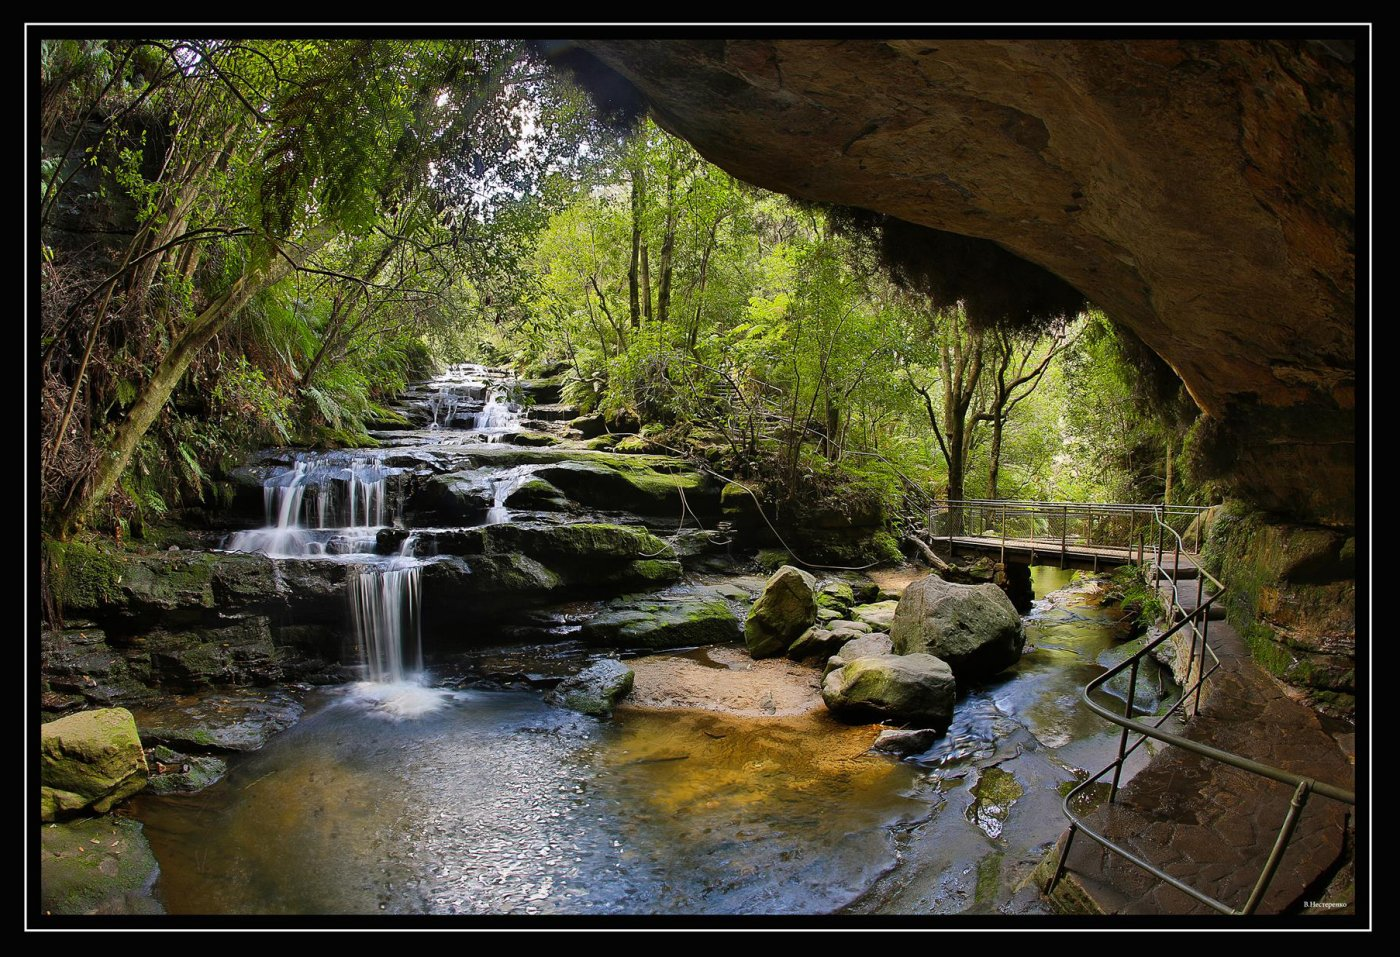 Фото 4675-1 (Copy).jpg. Австралия, New South Wales, Blue Mountains National Park, Hurley Heights Trail